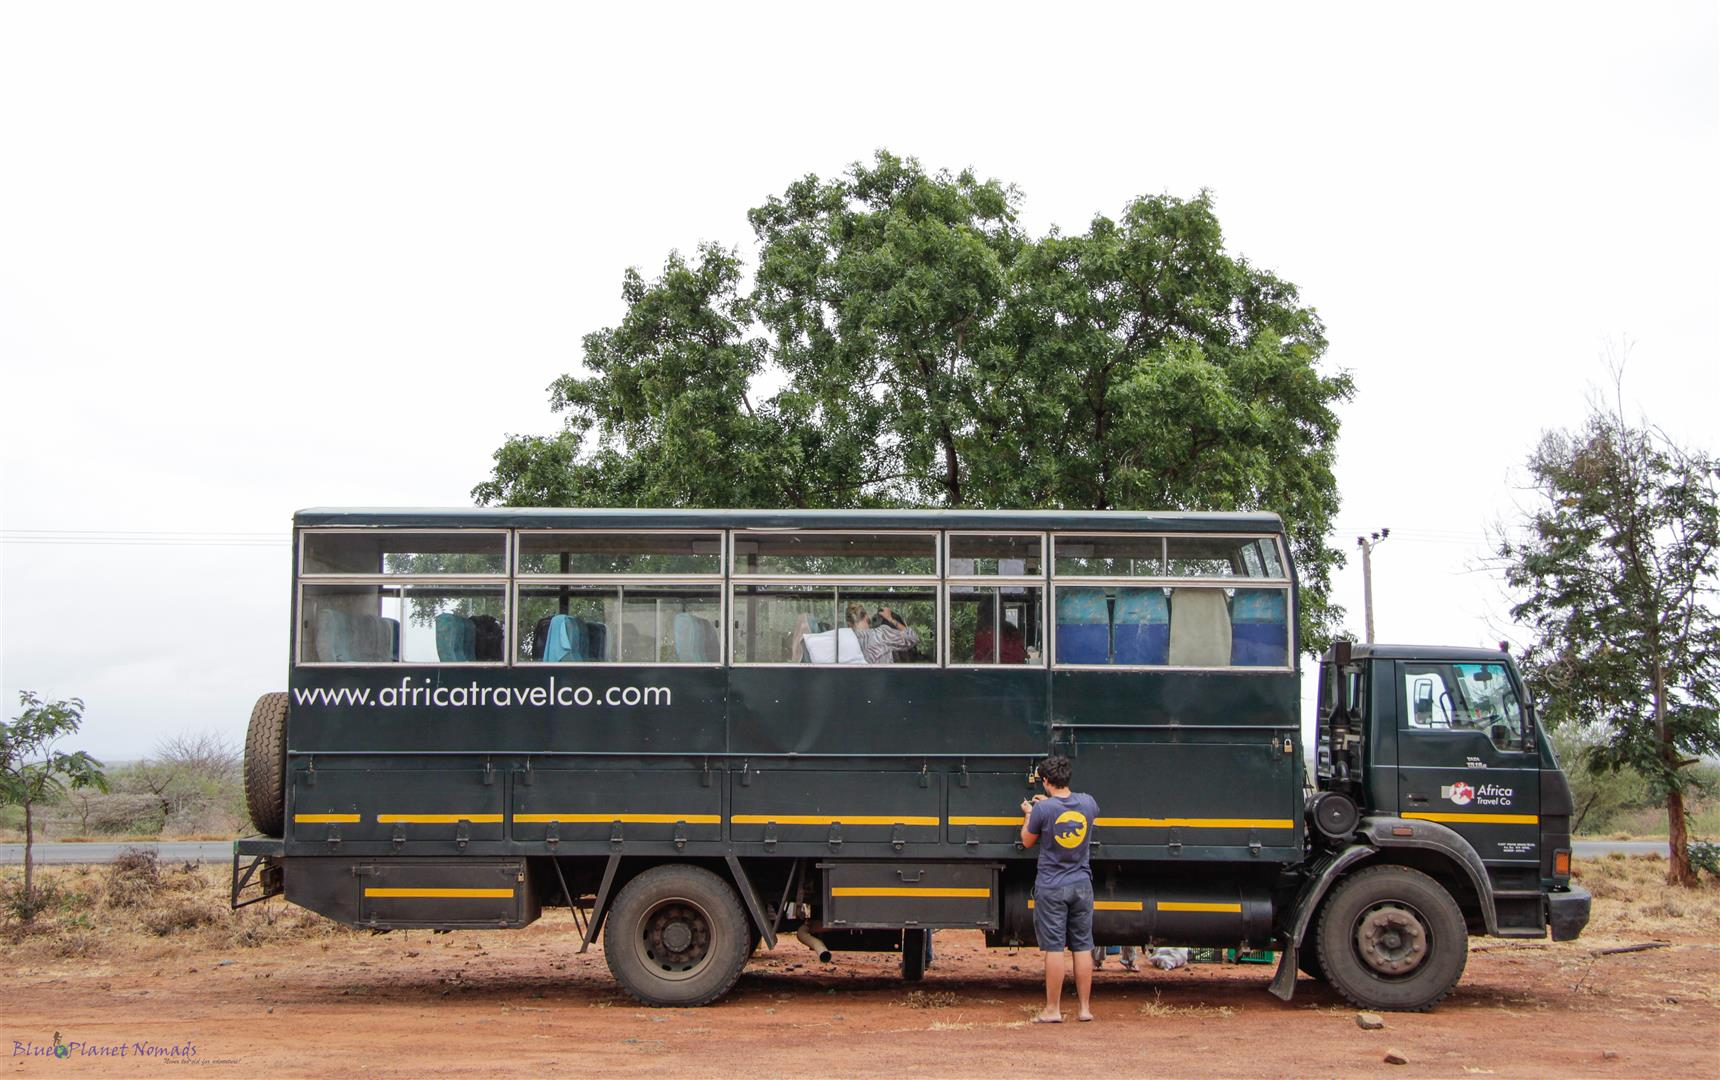 Life On An African Overland Truck What To Pack And Tips For A More Hassle Free Journey Blue Planet Nomads